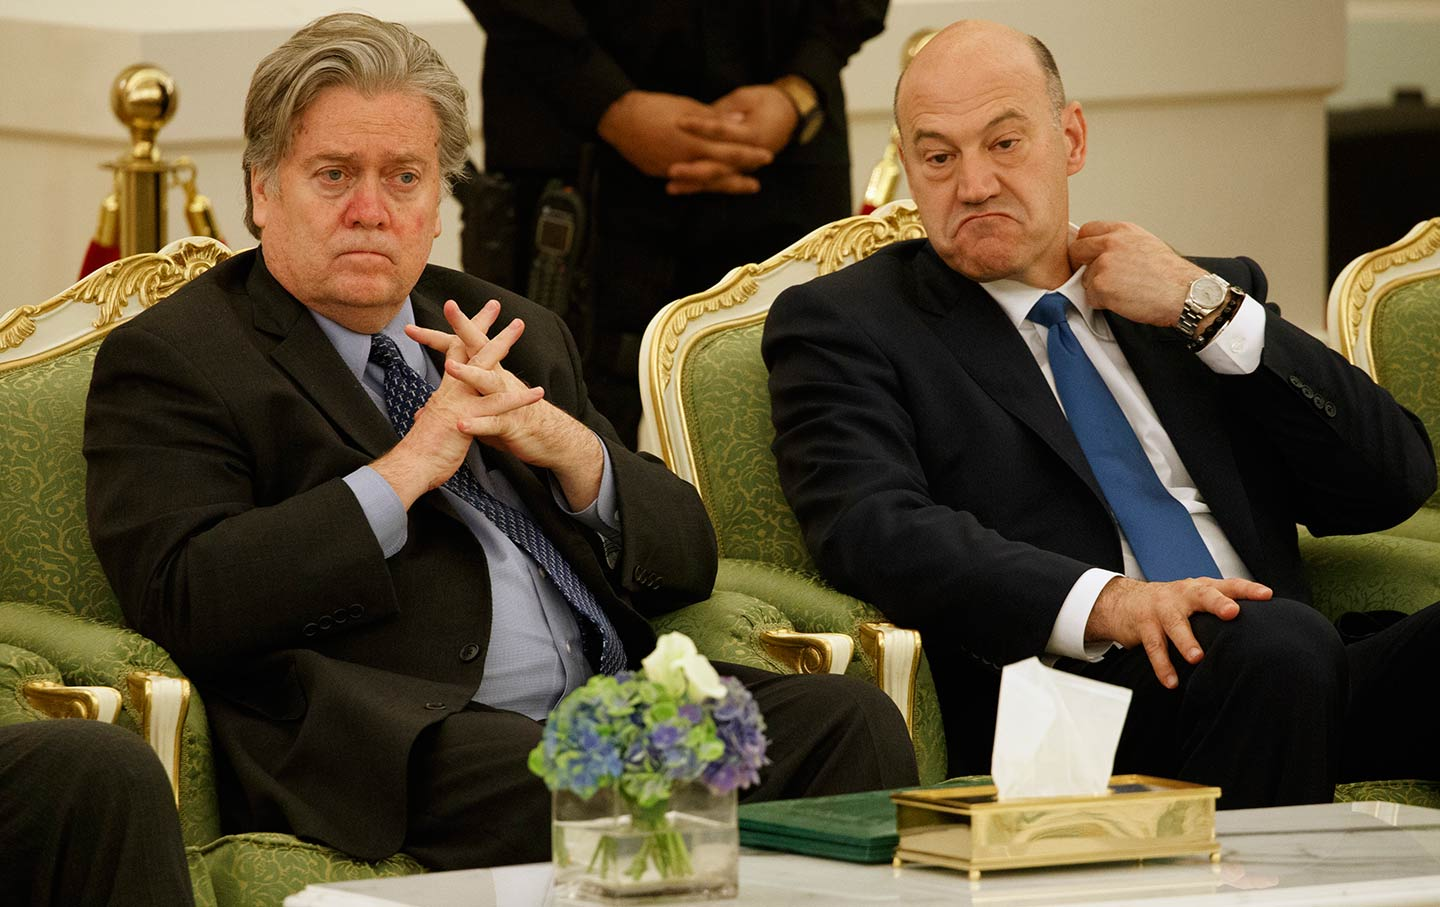 Bannon and Cohn